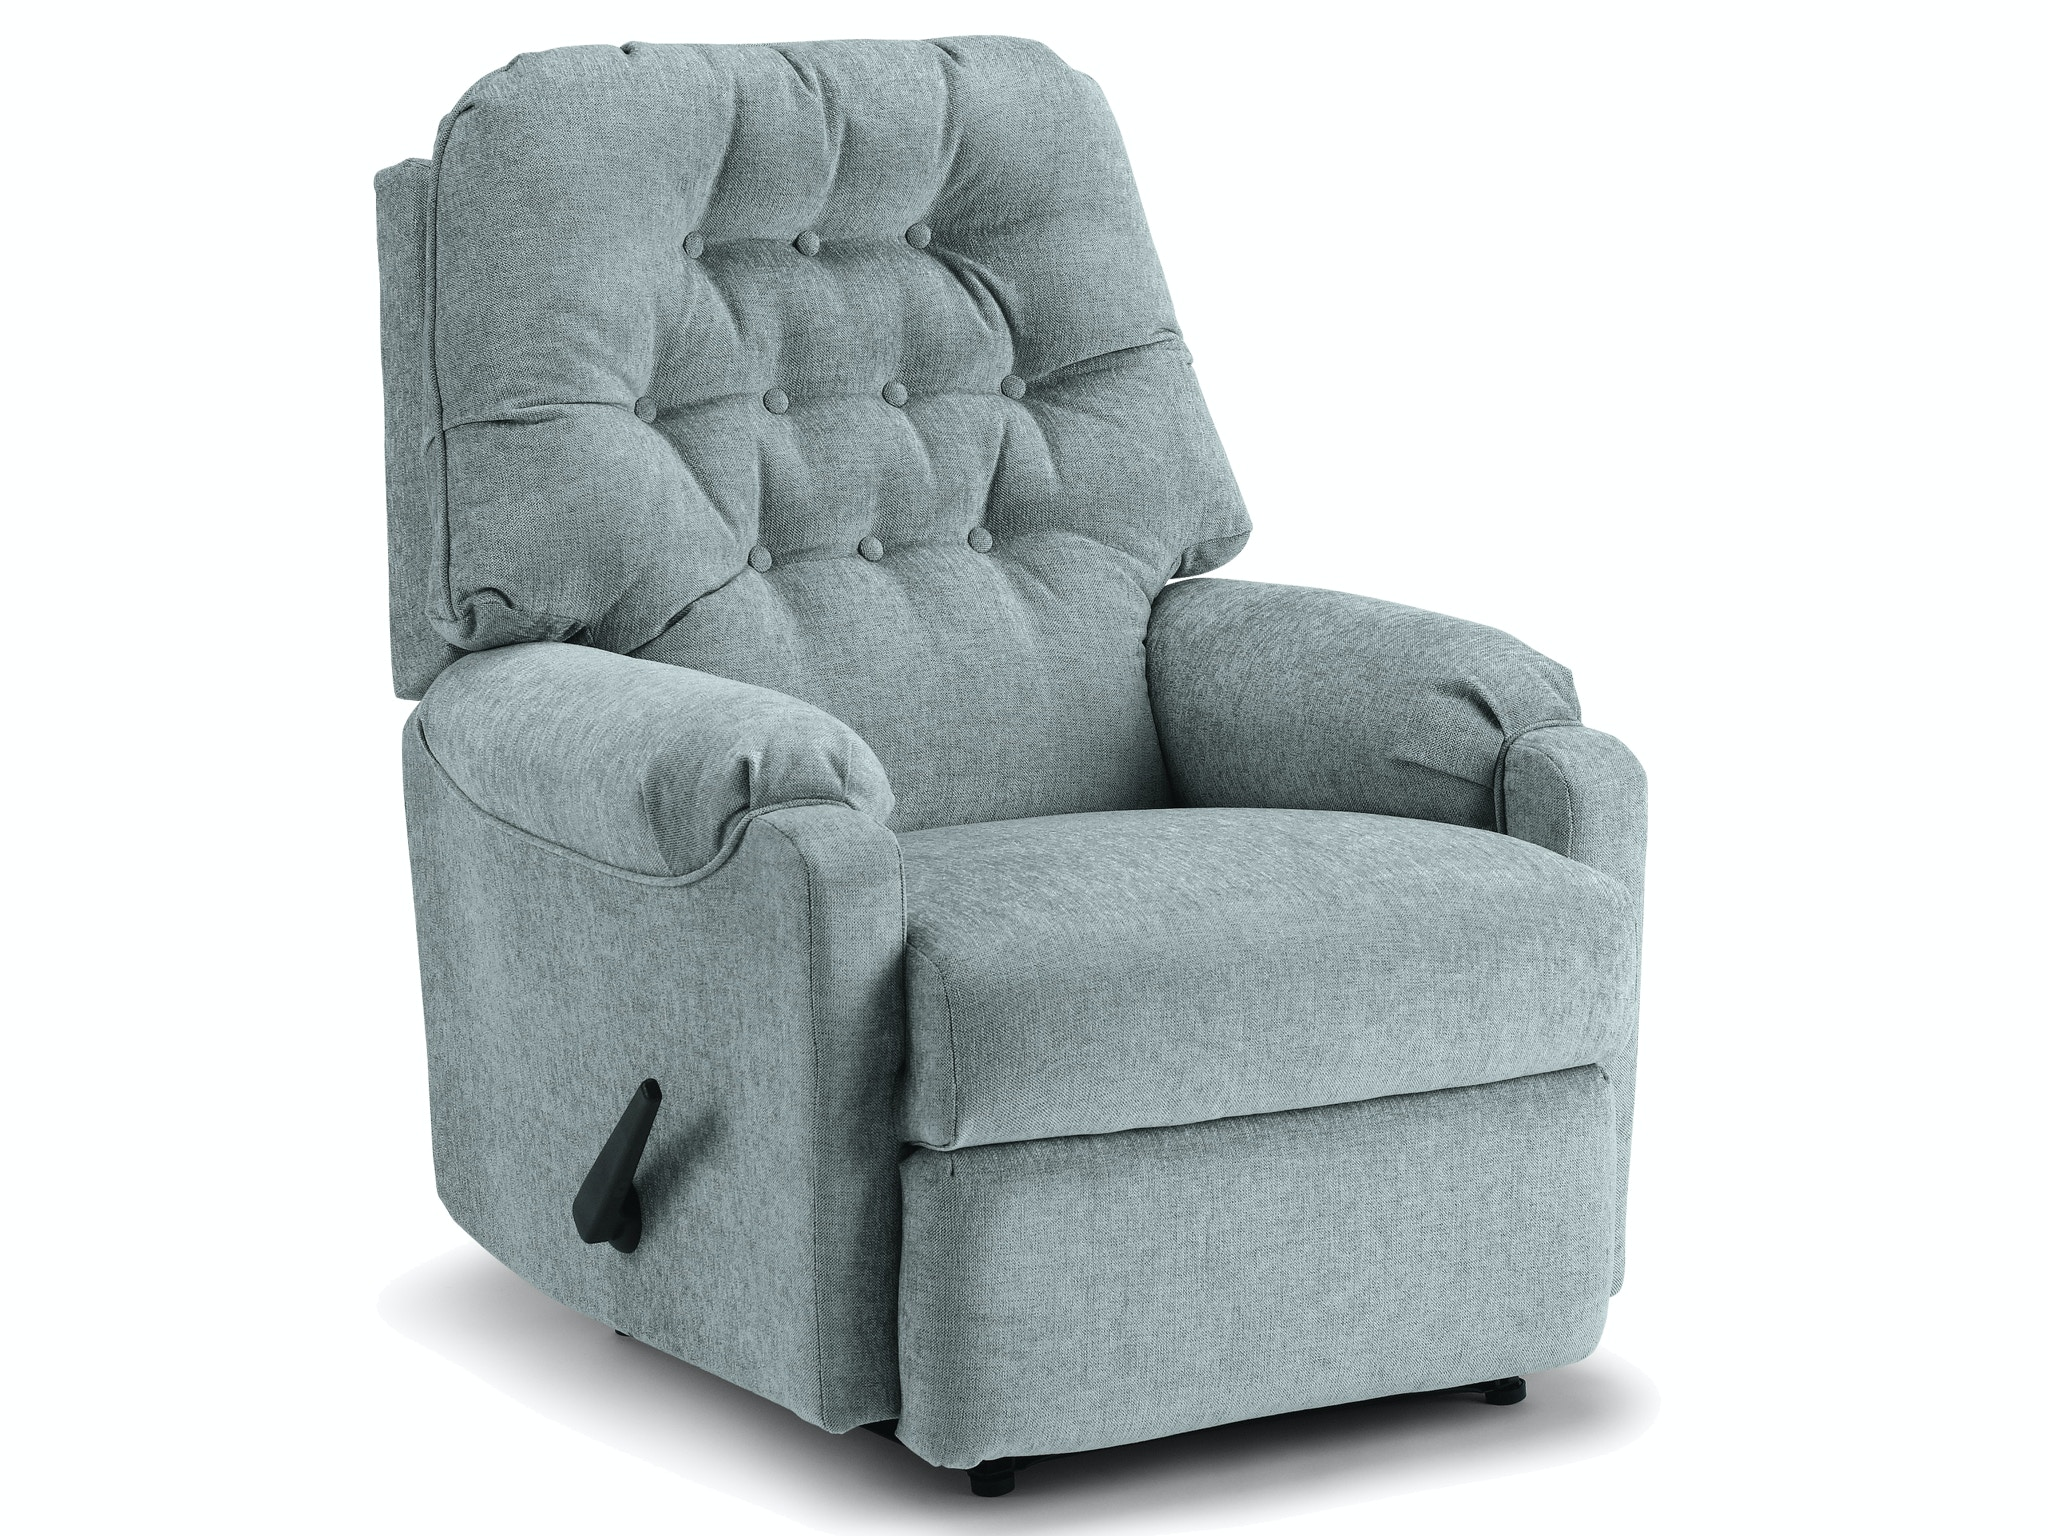 Good Best Home Furnishings Space Saver Recliner 1AW24